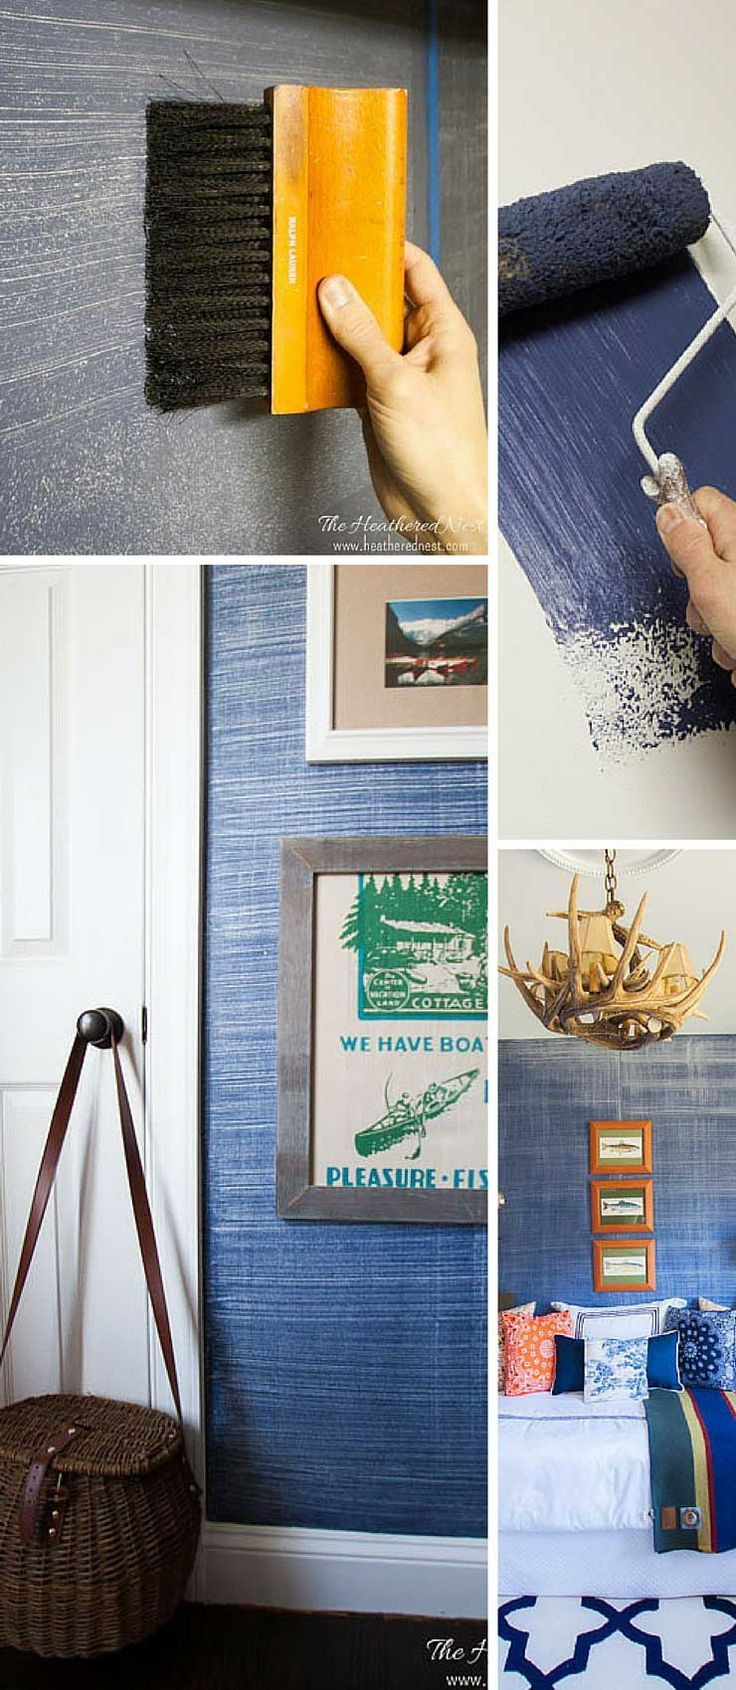 Best ideas about DIY Textured Paint . Save or Pin Best 25 Textured Painted Walls ideas on Pinterest Now.